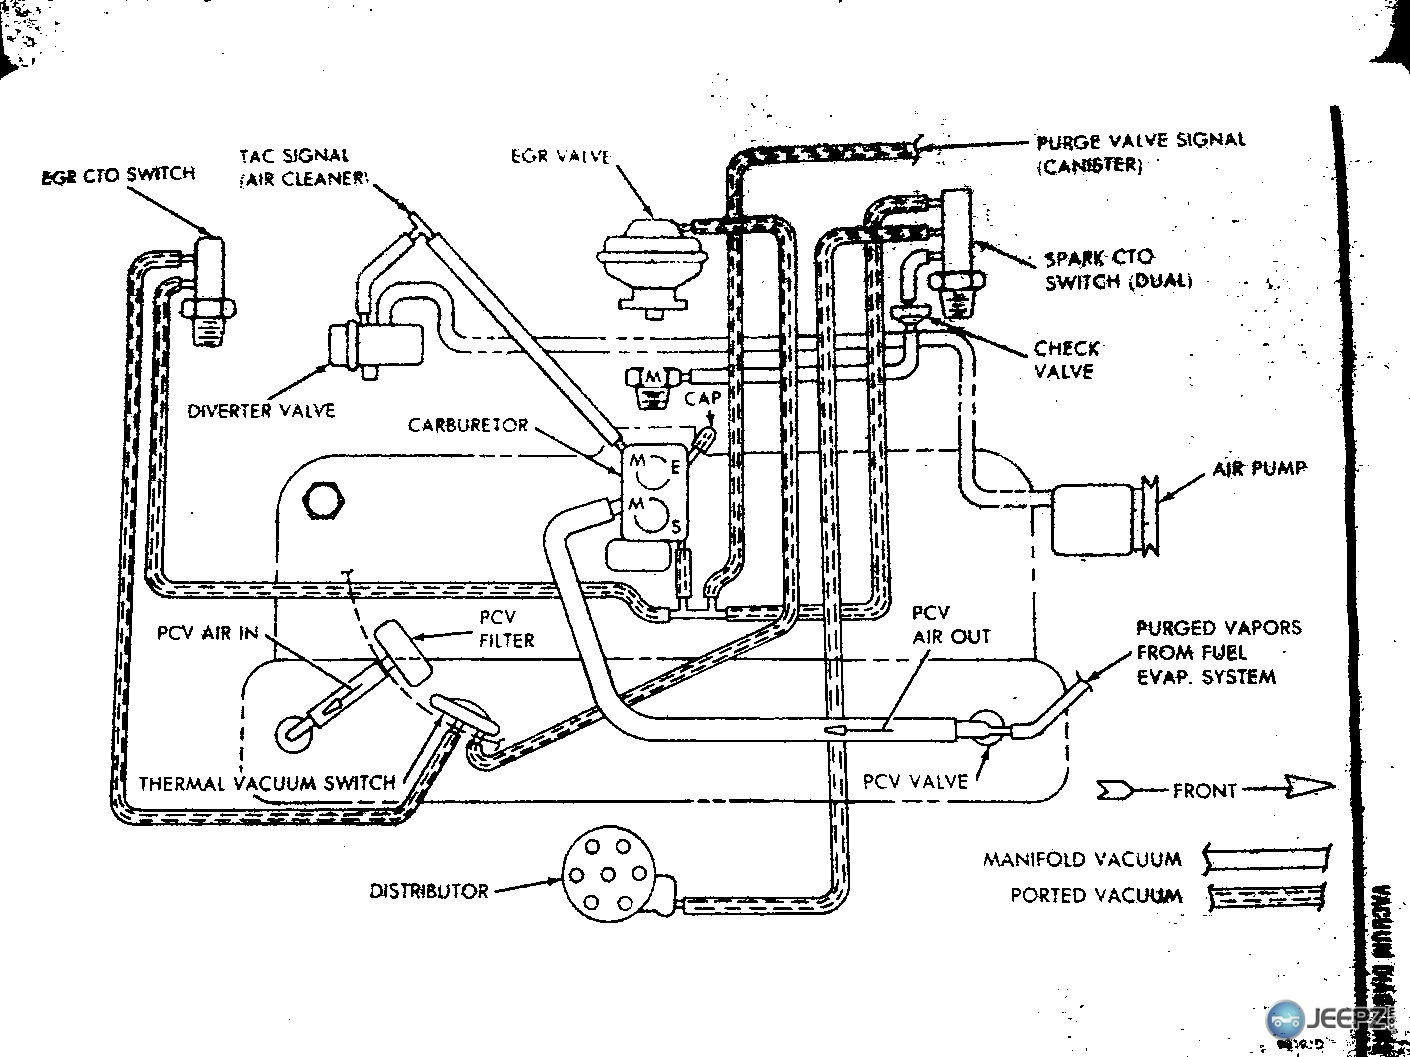 Jeep 2 4 Vacuum Lines Diagram - Great Installation Of Wiring Diagram  Jeep Cj Technical Wiring Diagram on 1998 jeep grand cherokee wiring diagram, 1977 jeep cj7 parts, 1980 jeep cj7 wiring diagram, 1977 jeep cj7 owner's manual, 1981 jeep cj7 wiring diagram, 1977 jeep cj7 frame, 1986 jeep cj7 wiring diagram, 1984 jeep cj7 wiring diagram, 1983 jeep cj7 wiring diagram, 1977 jeep cj7 seats, 1982 jeep cj7 wiring diagram, 1976 jeep cj7 wiring diagram, 1977 jeep cj7 brochure, 1977 jeep cj7 air conditioning, jeep ignition switch wiring diagram, 1967 jeep cj5 wiring diagram, 1971 jeep cj5 wiring diagram, 1979 jeep cj7 wiring diagram, cj7 wiring harness diagram, 1985 jeep cj7 wiring diagram,